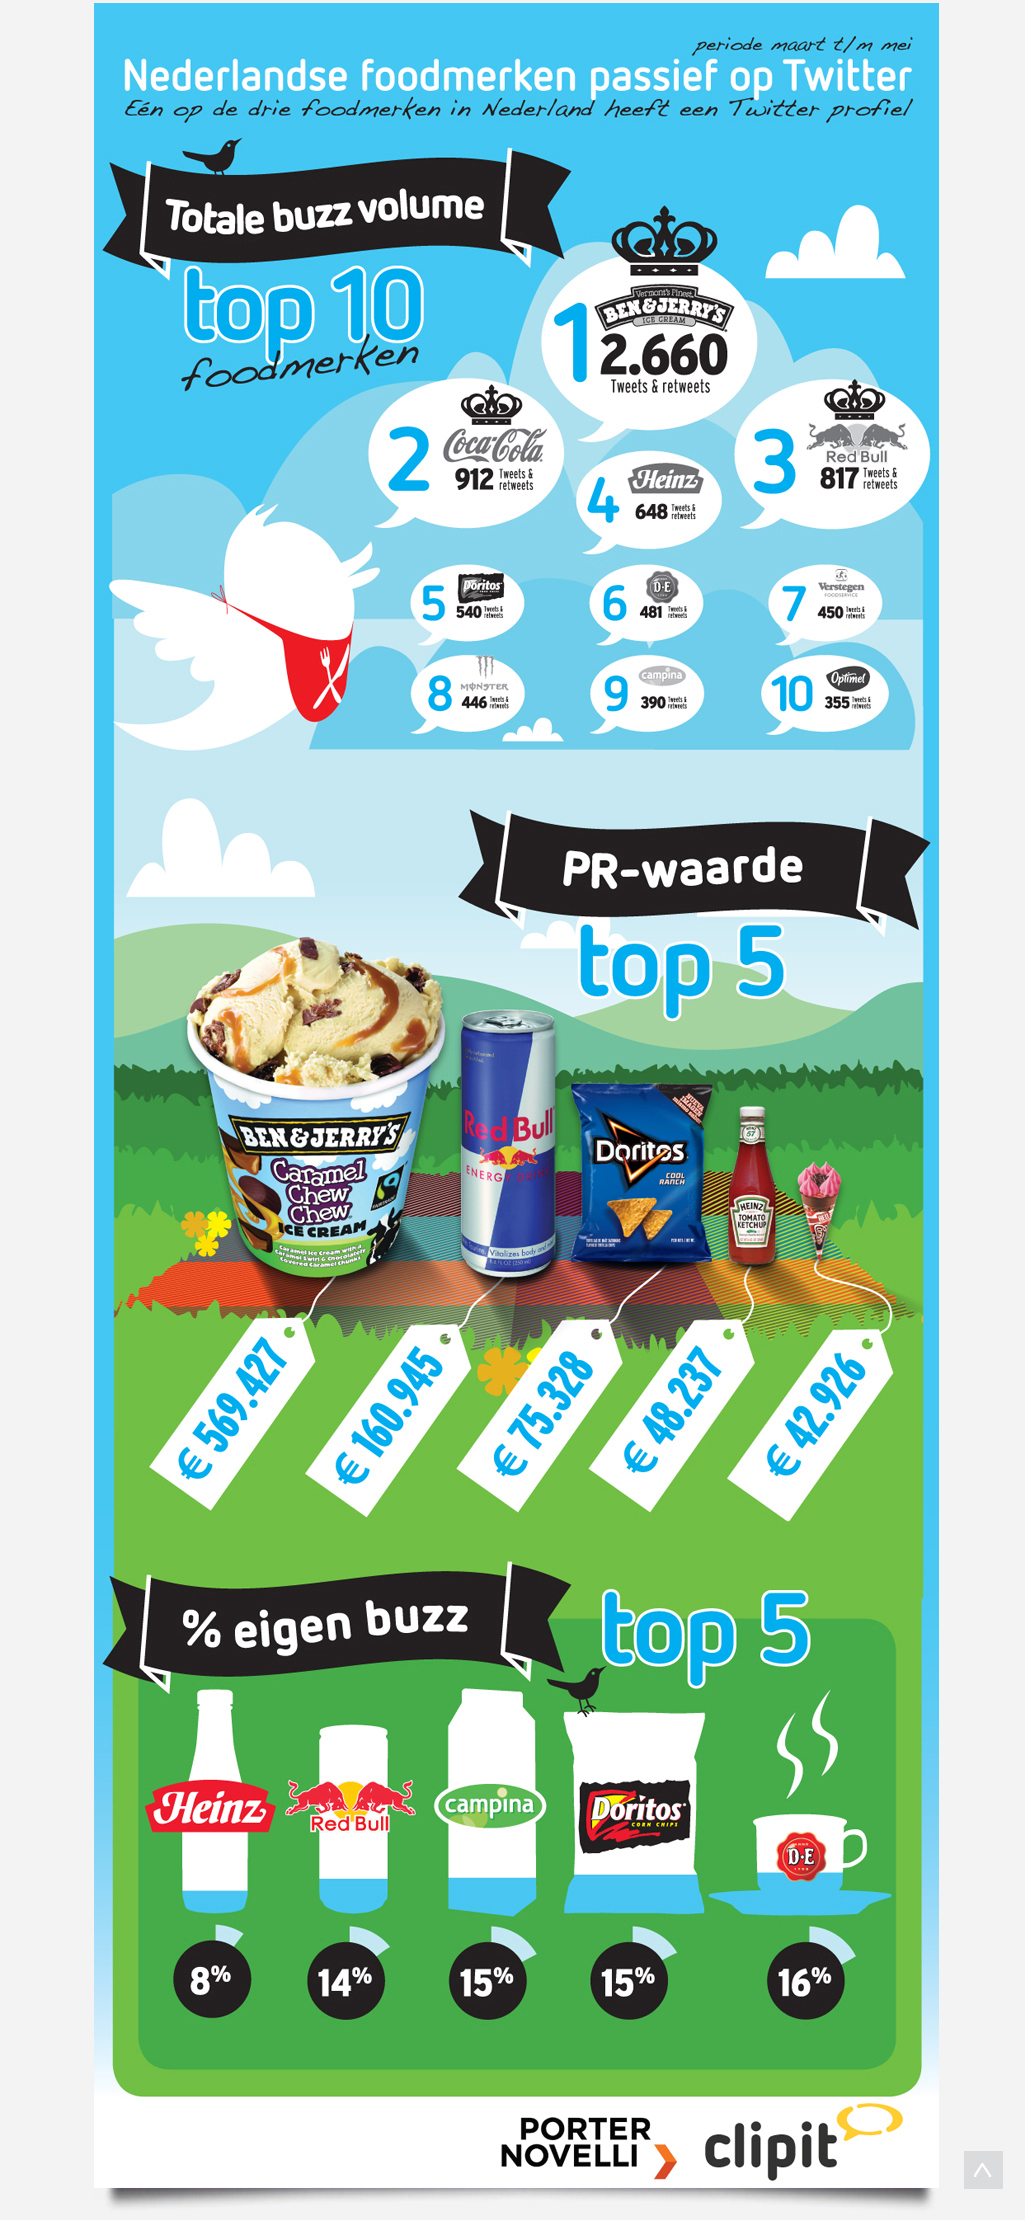 Infographic Clipit Foodbranche